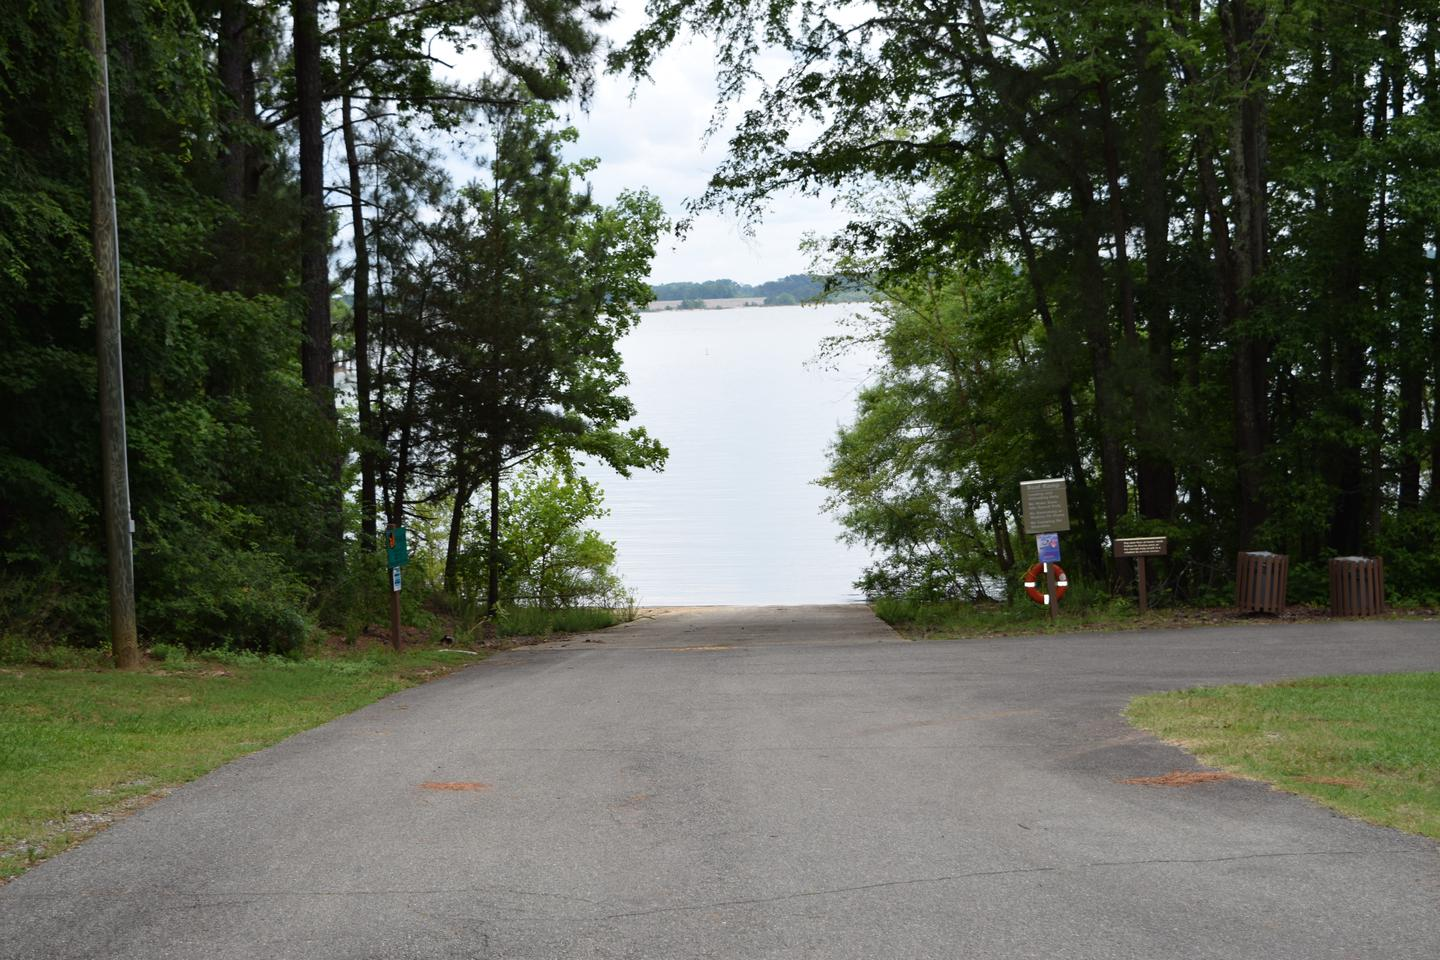 Area A Boat RampWelcome to North Bend Park! This is a picture of the Area A boat ramp. This boat ramp is open to campers as well as an over-flow area for boaters coming from the main ramp. There is no designated parking at this ramp, therefore you are allowed to park along the edges of the road. Please use caution when parking and please be sure that your vehicle and trailer are out of the way of the road and allow for other users to utilize the ramp as well.